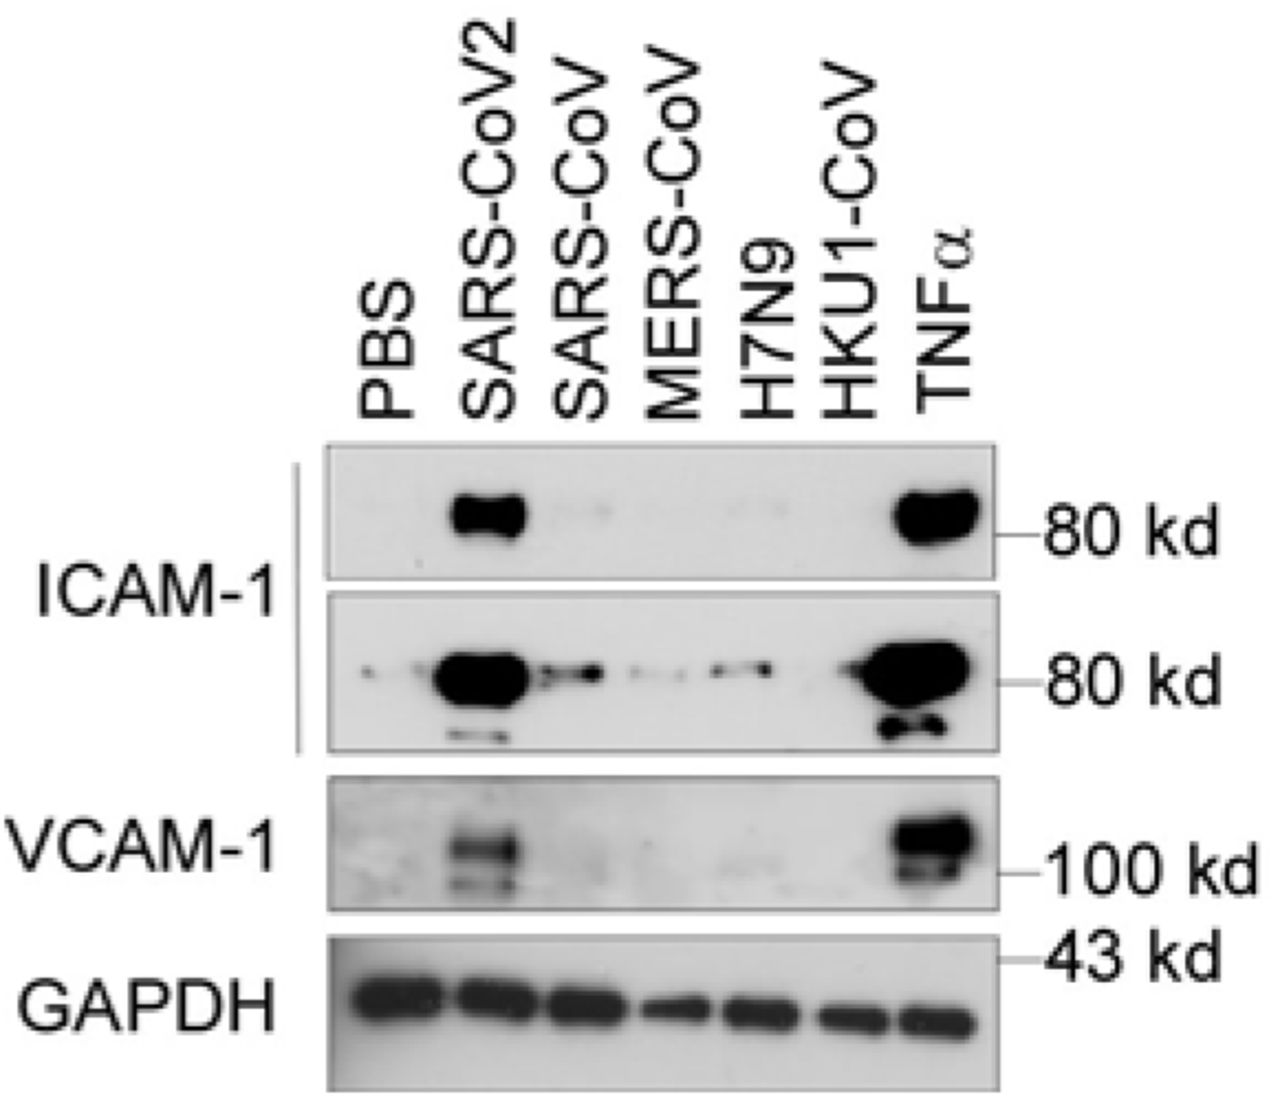 The N protein from SARS-CoV2 but not the other coronaviruses potently induced endothelial cell activation. HLMECs were treated with or without five different recombinant viral N proteins (1 μg/mL) including SARS-CoV2, SARS-CoV, MERS-CoV, H7N9 and HKU1-CoV for 8 hrs. The expression of ICAM-1 and VCAM-1 was detected by western blot. TNFα (10 ng/mL) was served as a positive control. GAPDH was served as loading control. The experiments were repeated at least one more time.